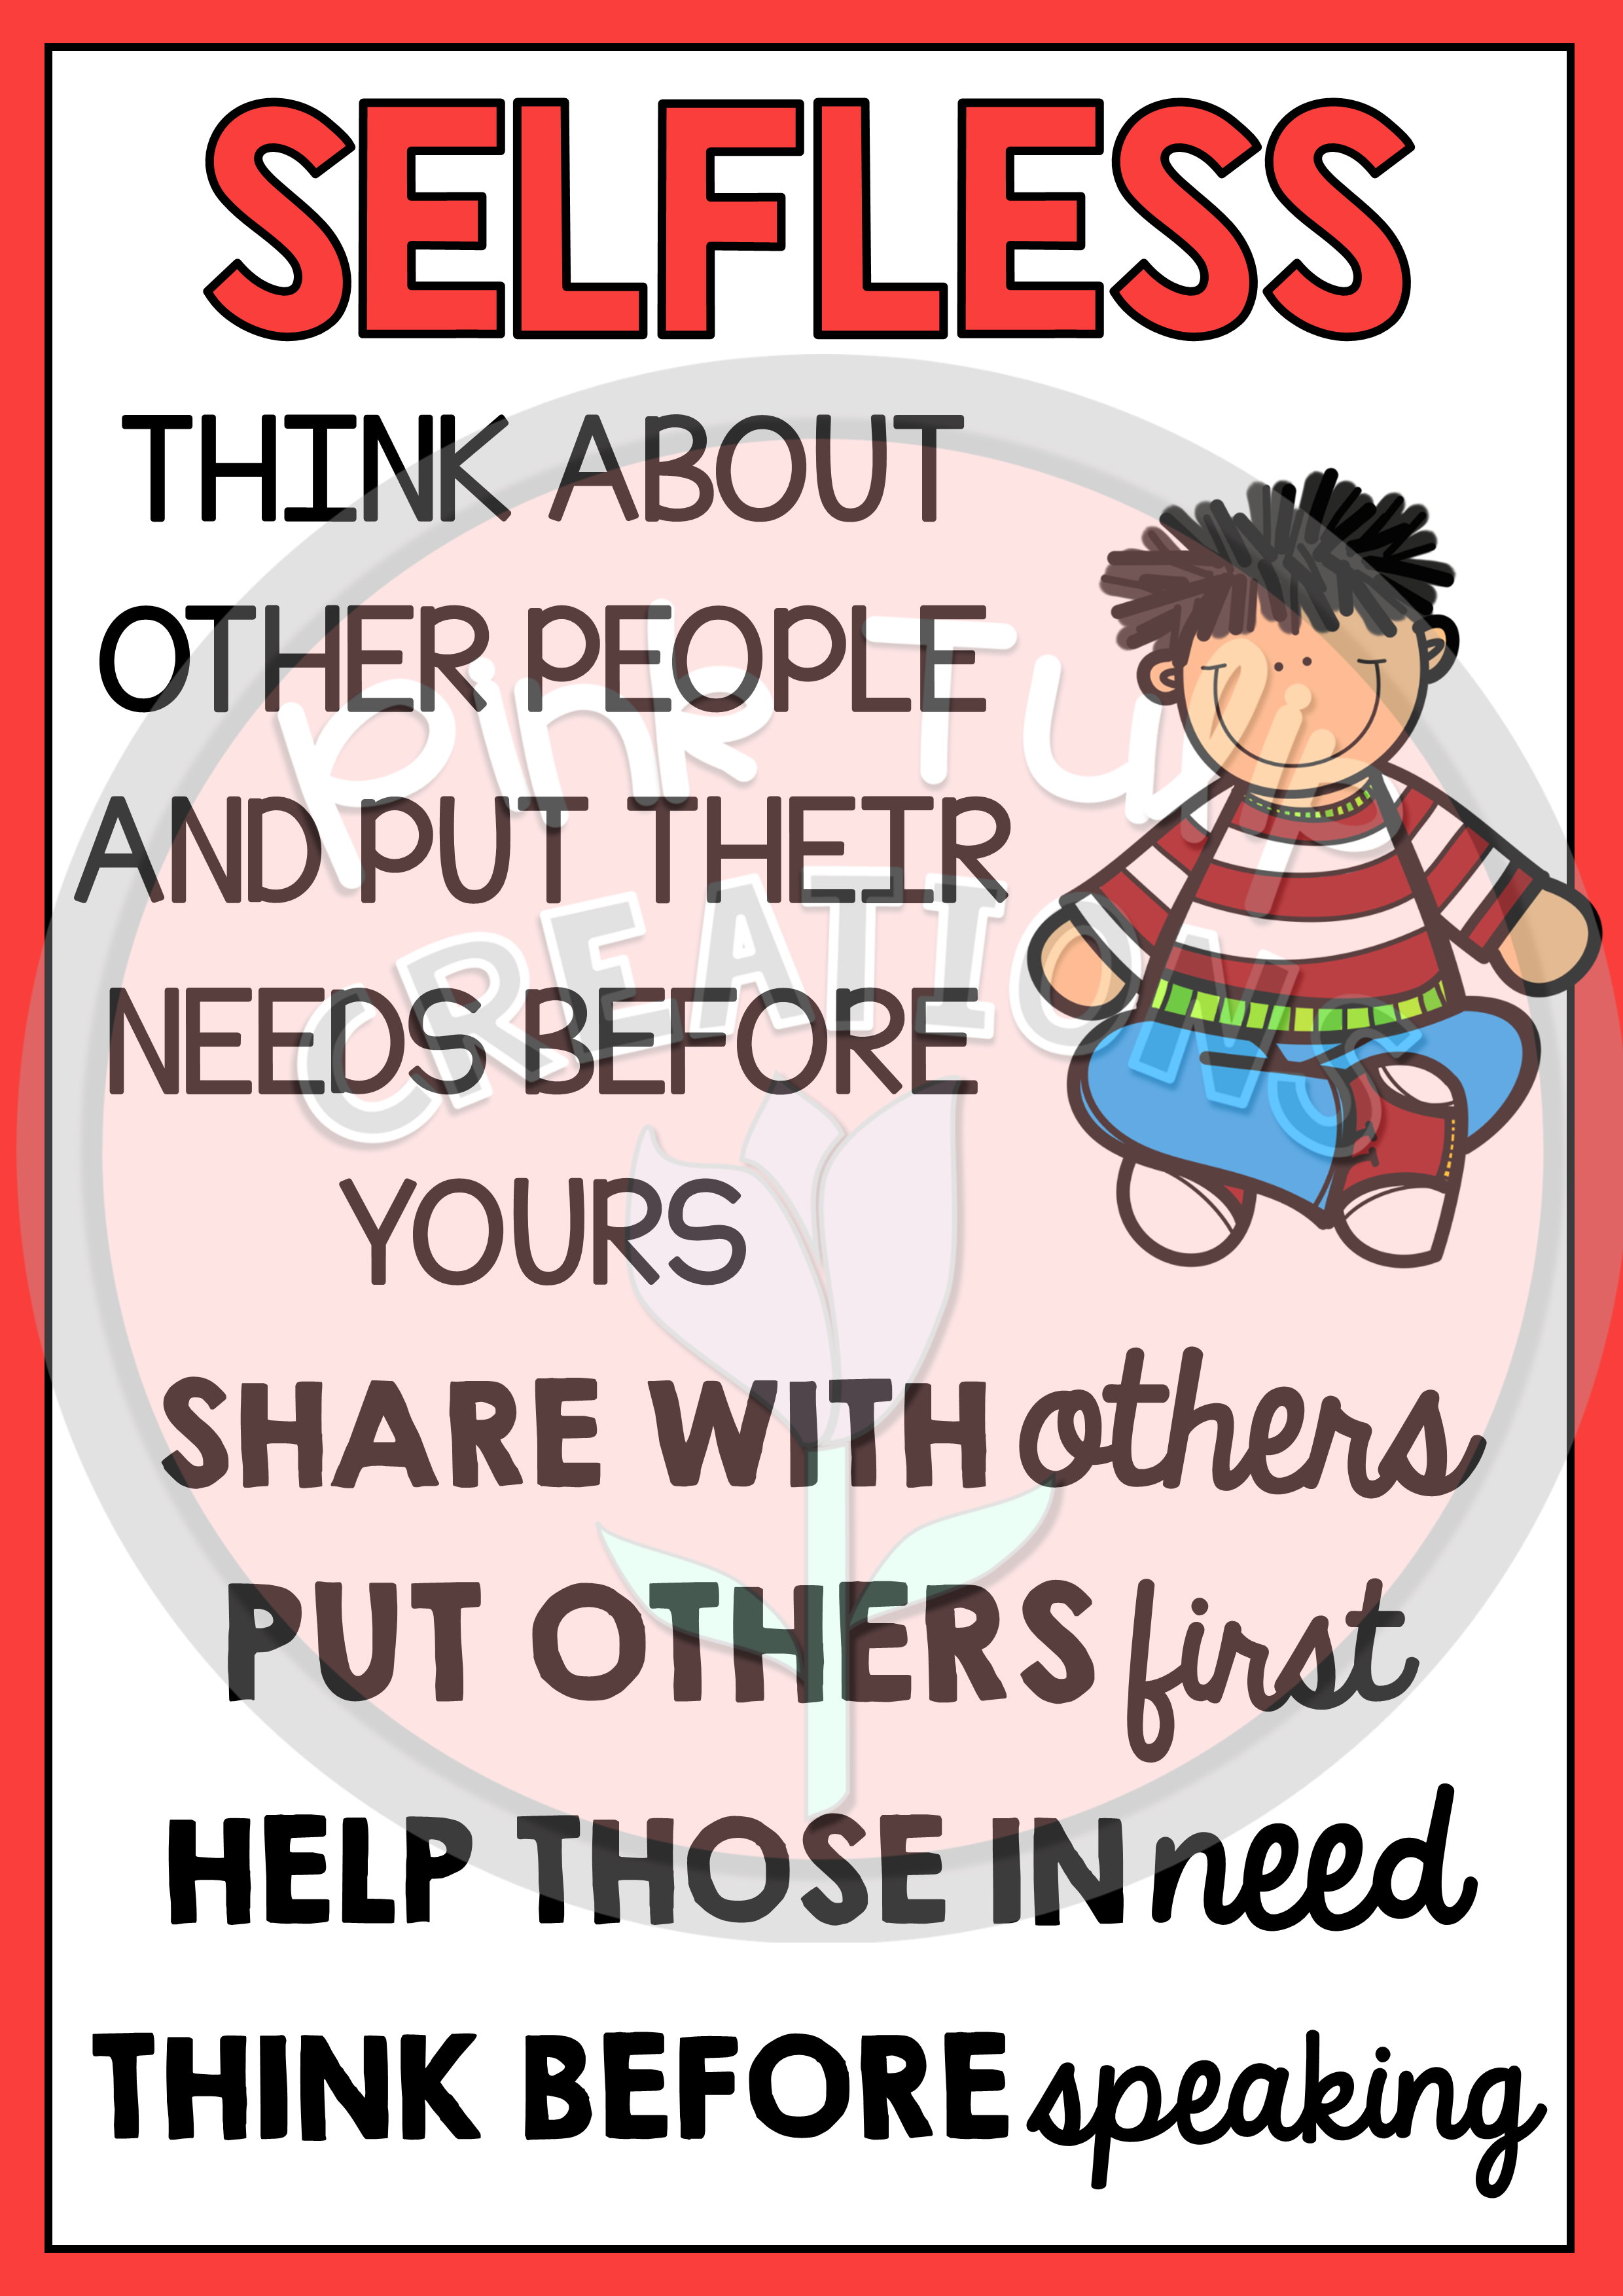 Kindness Posters Values And Respect In The Classroom Teaching Emotions Social Skills Lessons Social Emotional Learning